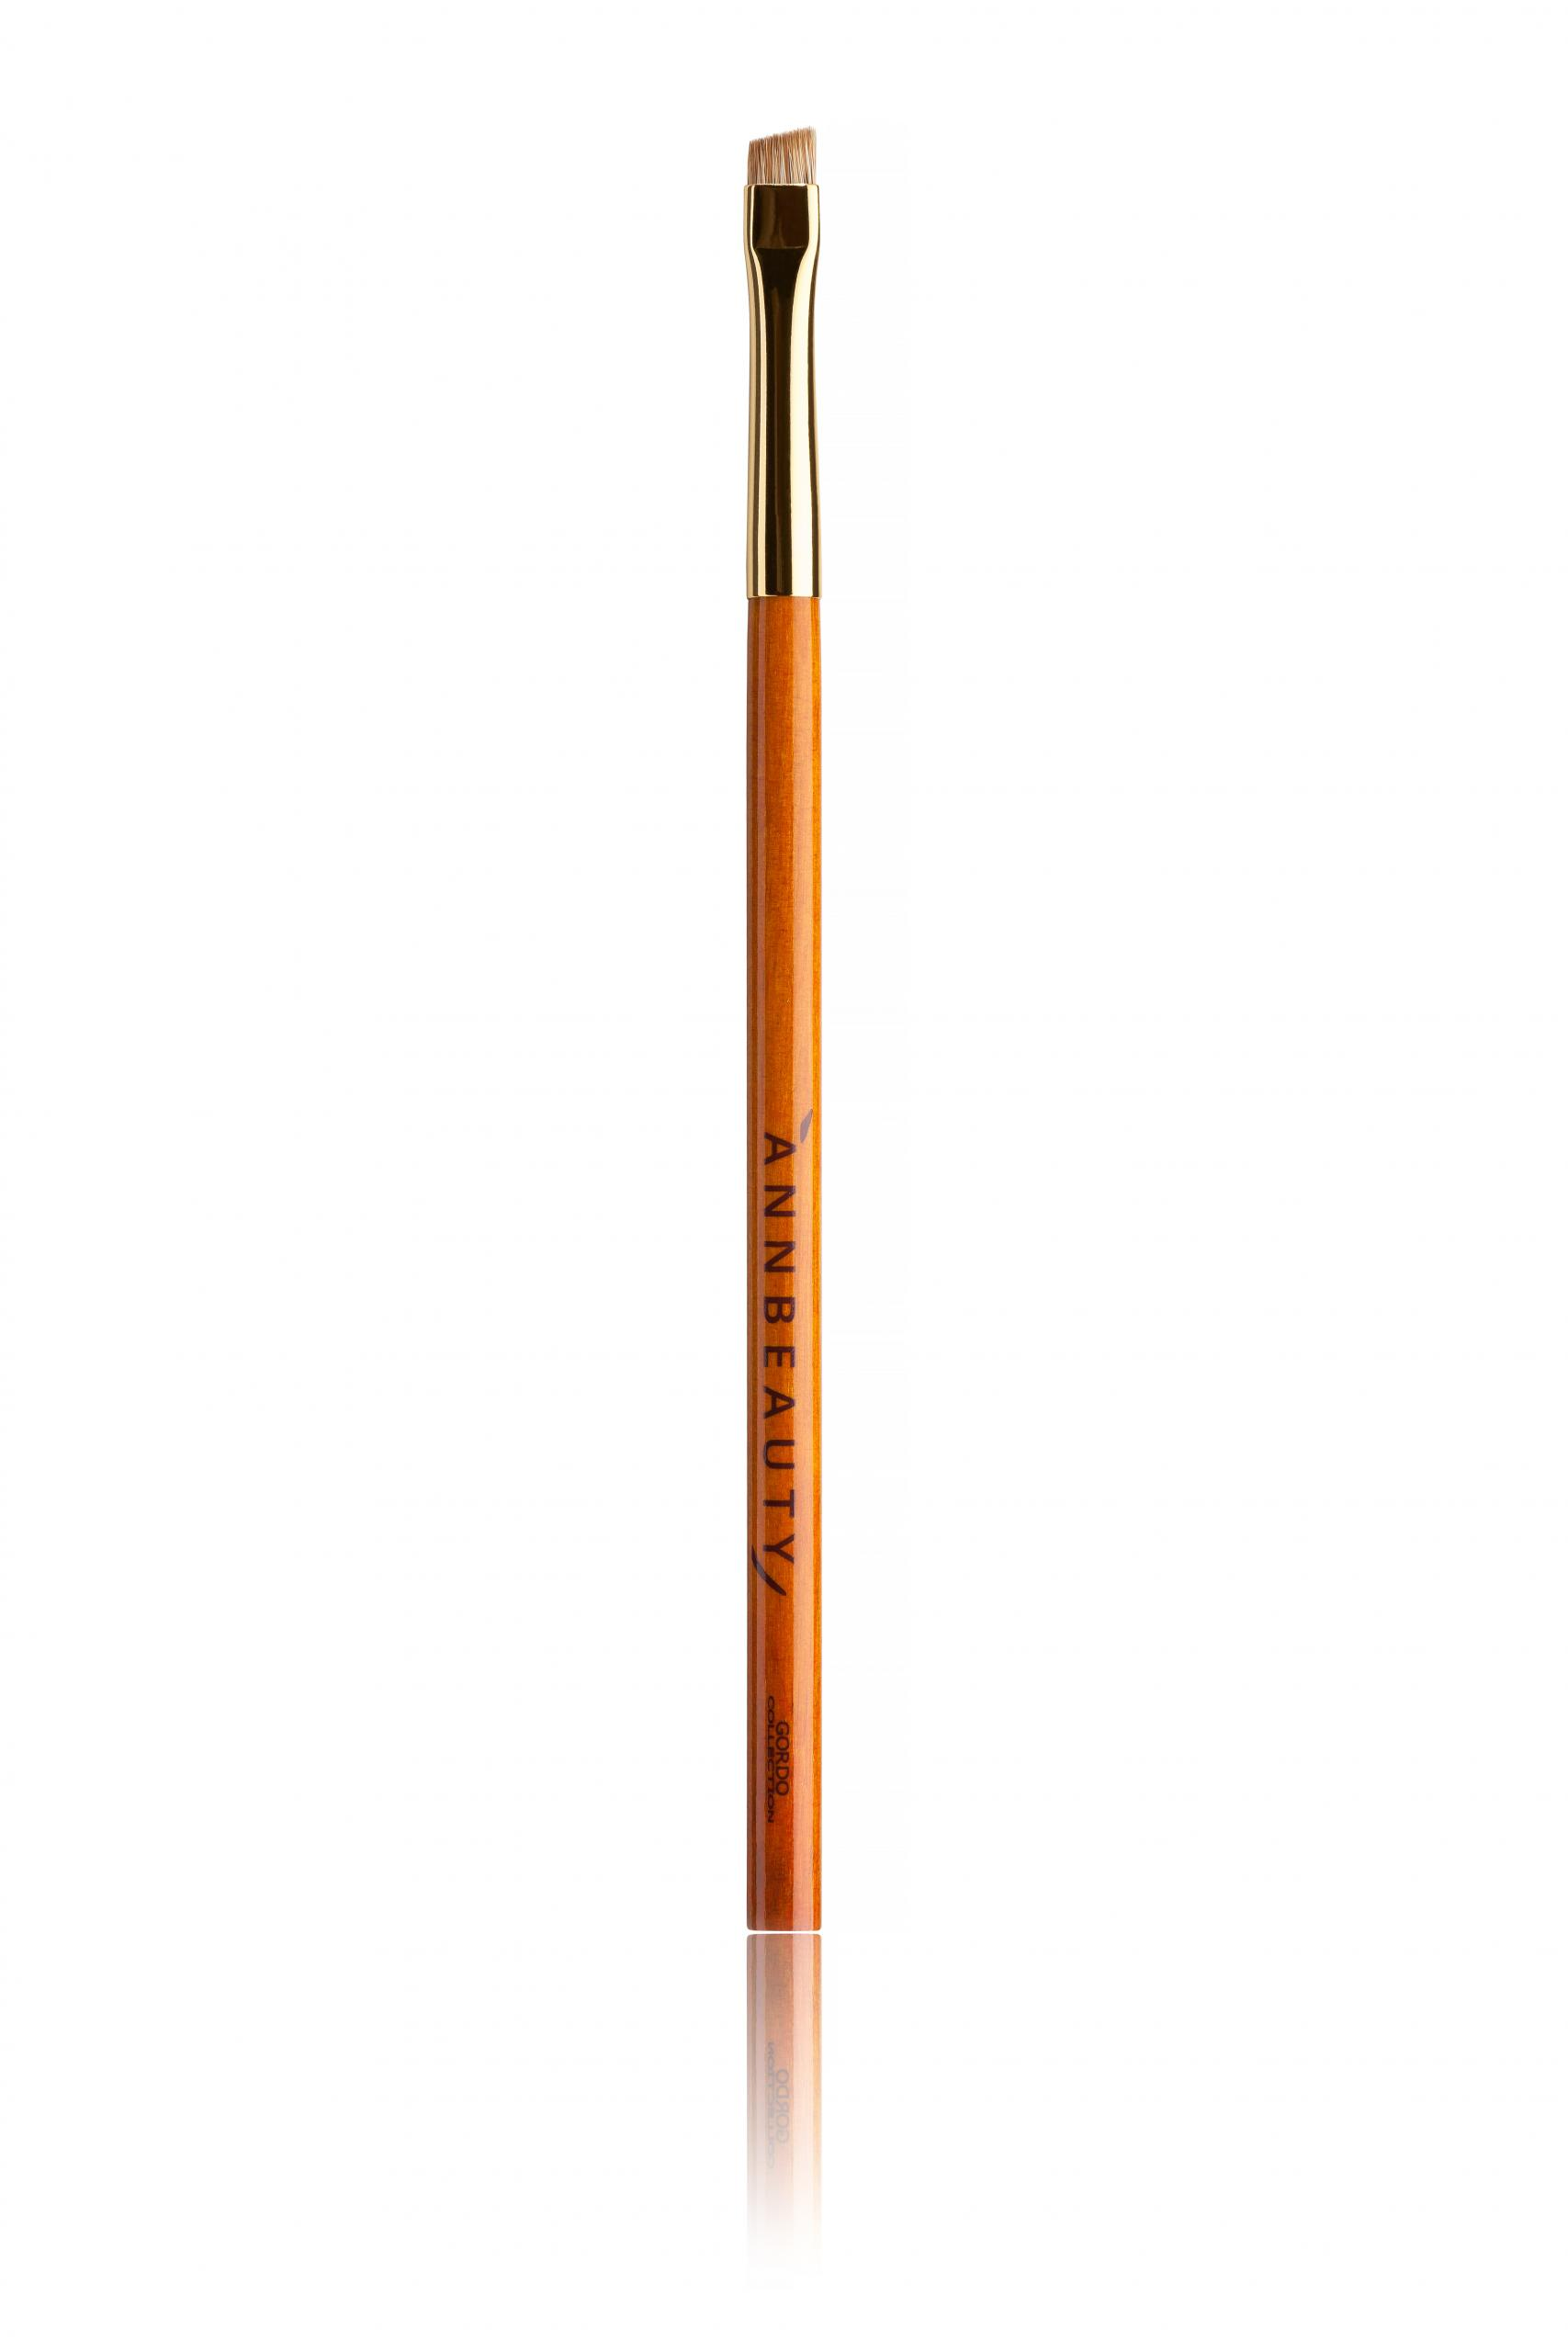 Annbeauty GORDO G10 Eyebrow Brush